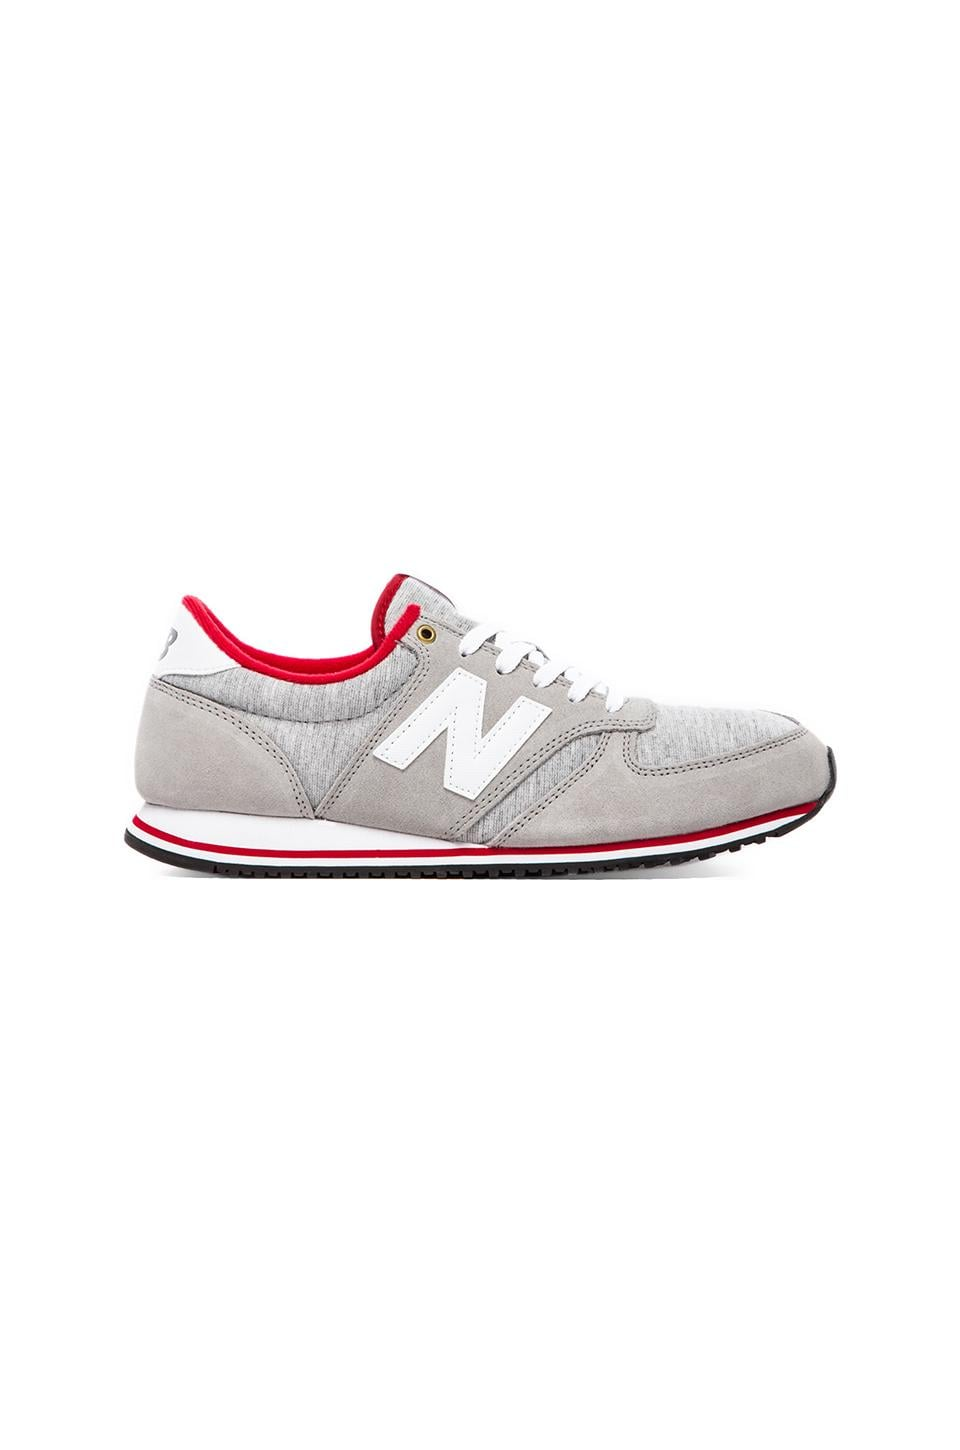 New Balance U420 in Grey Suede & Textile